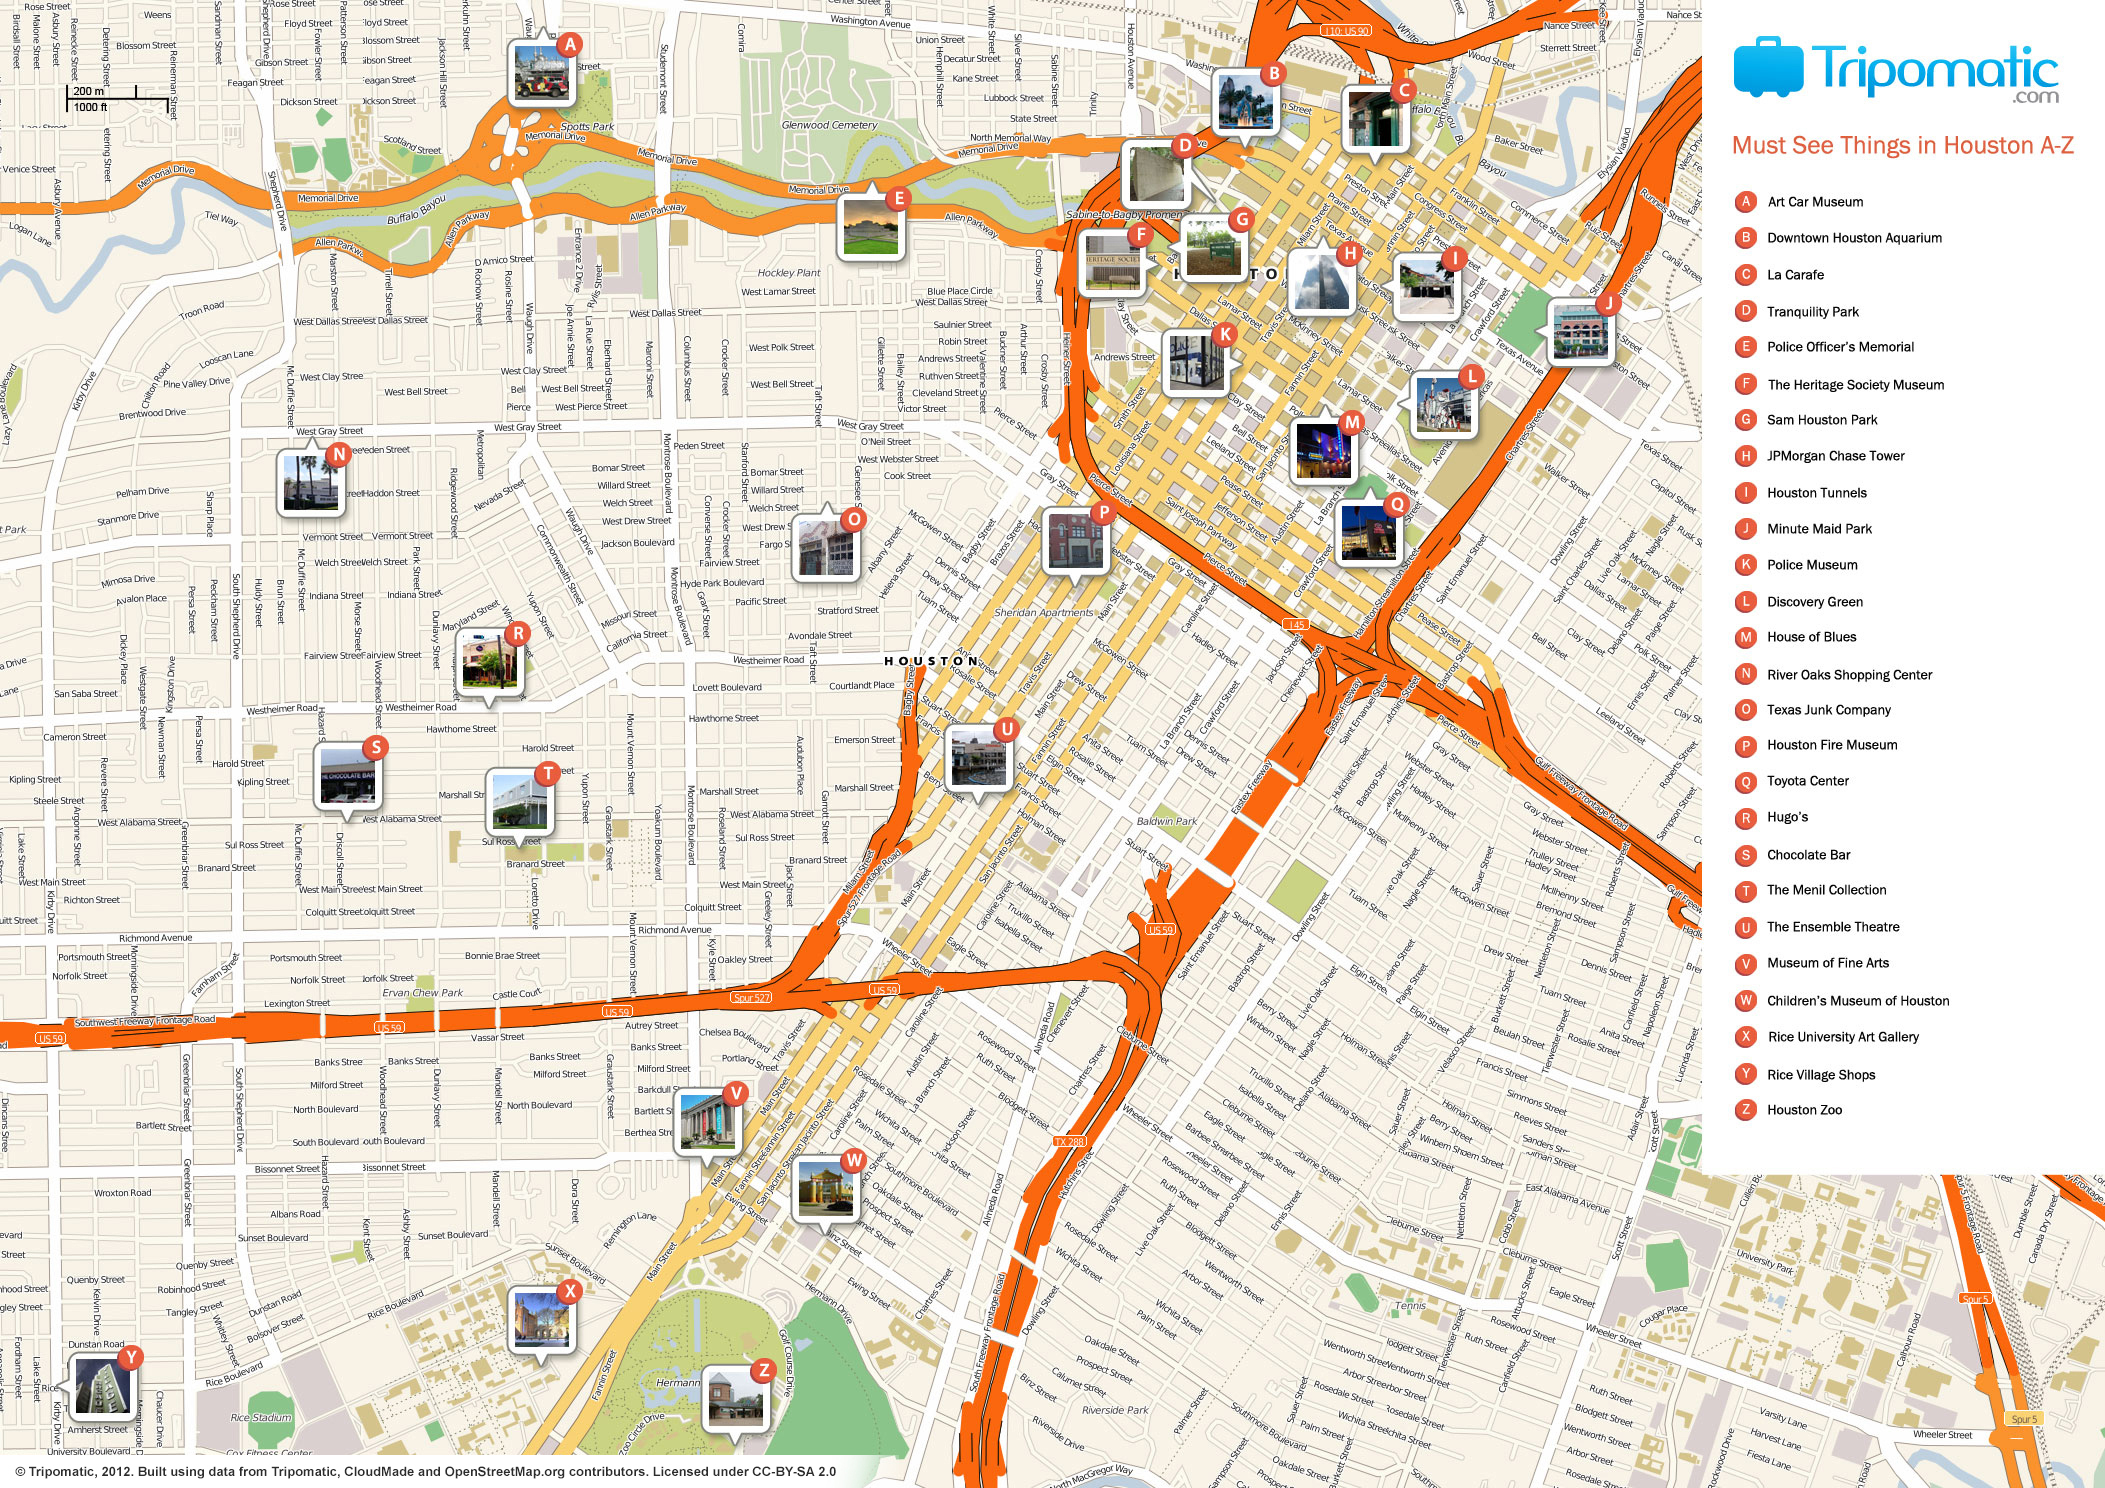 File:houston Printable Tourist Attractions Map - Wikimedia Commons - Printable Map Of Houston